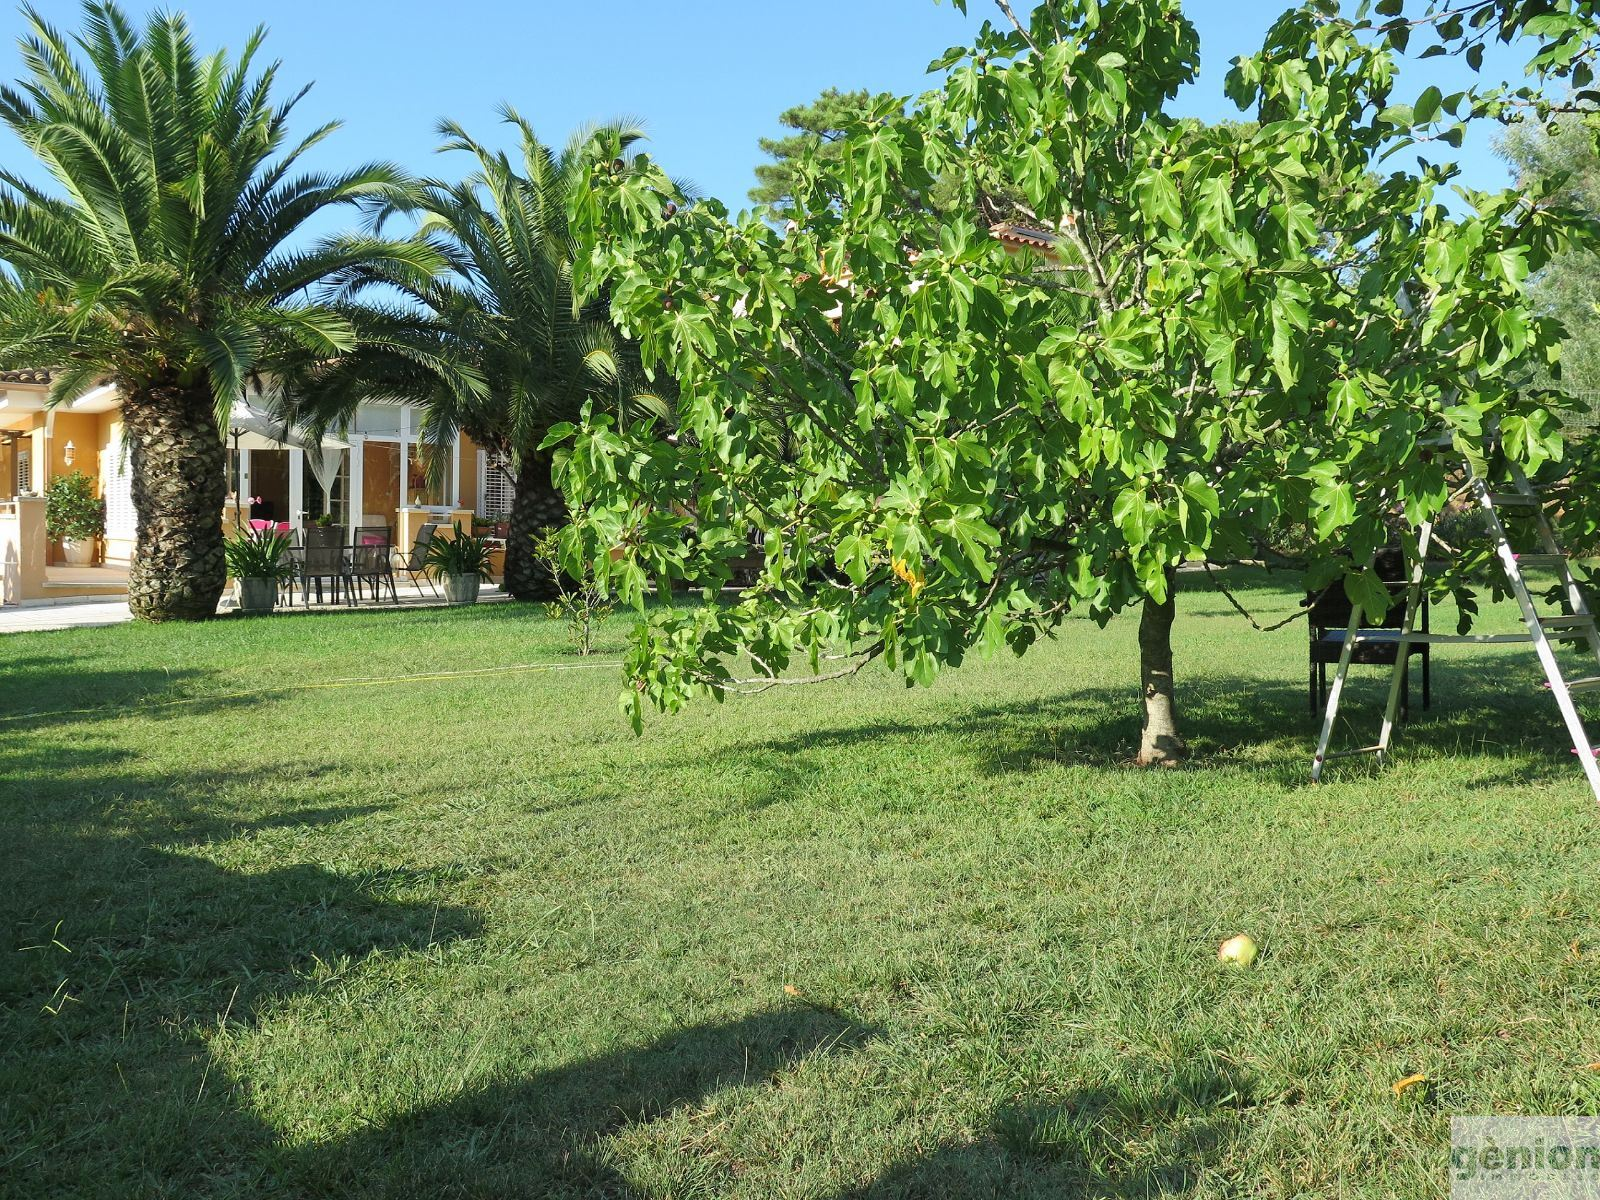 HOUSE IN STA. CRISTINA D'ARO, MAS TREMPAT. 300M² BUILT AND 970M² OF PLOT